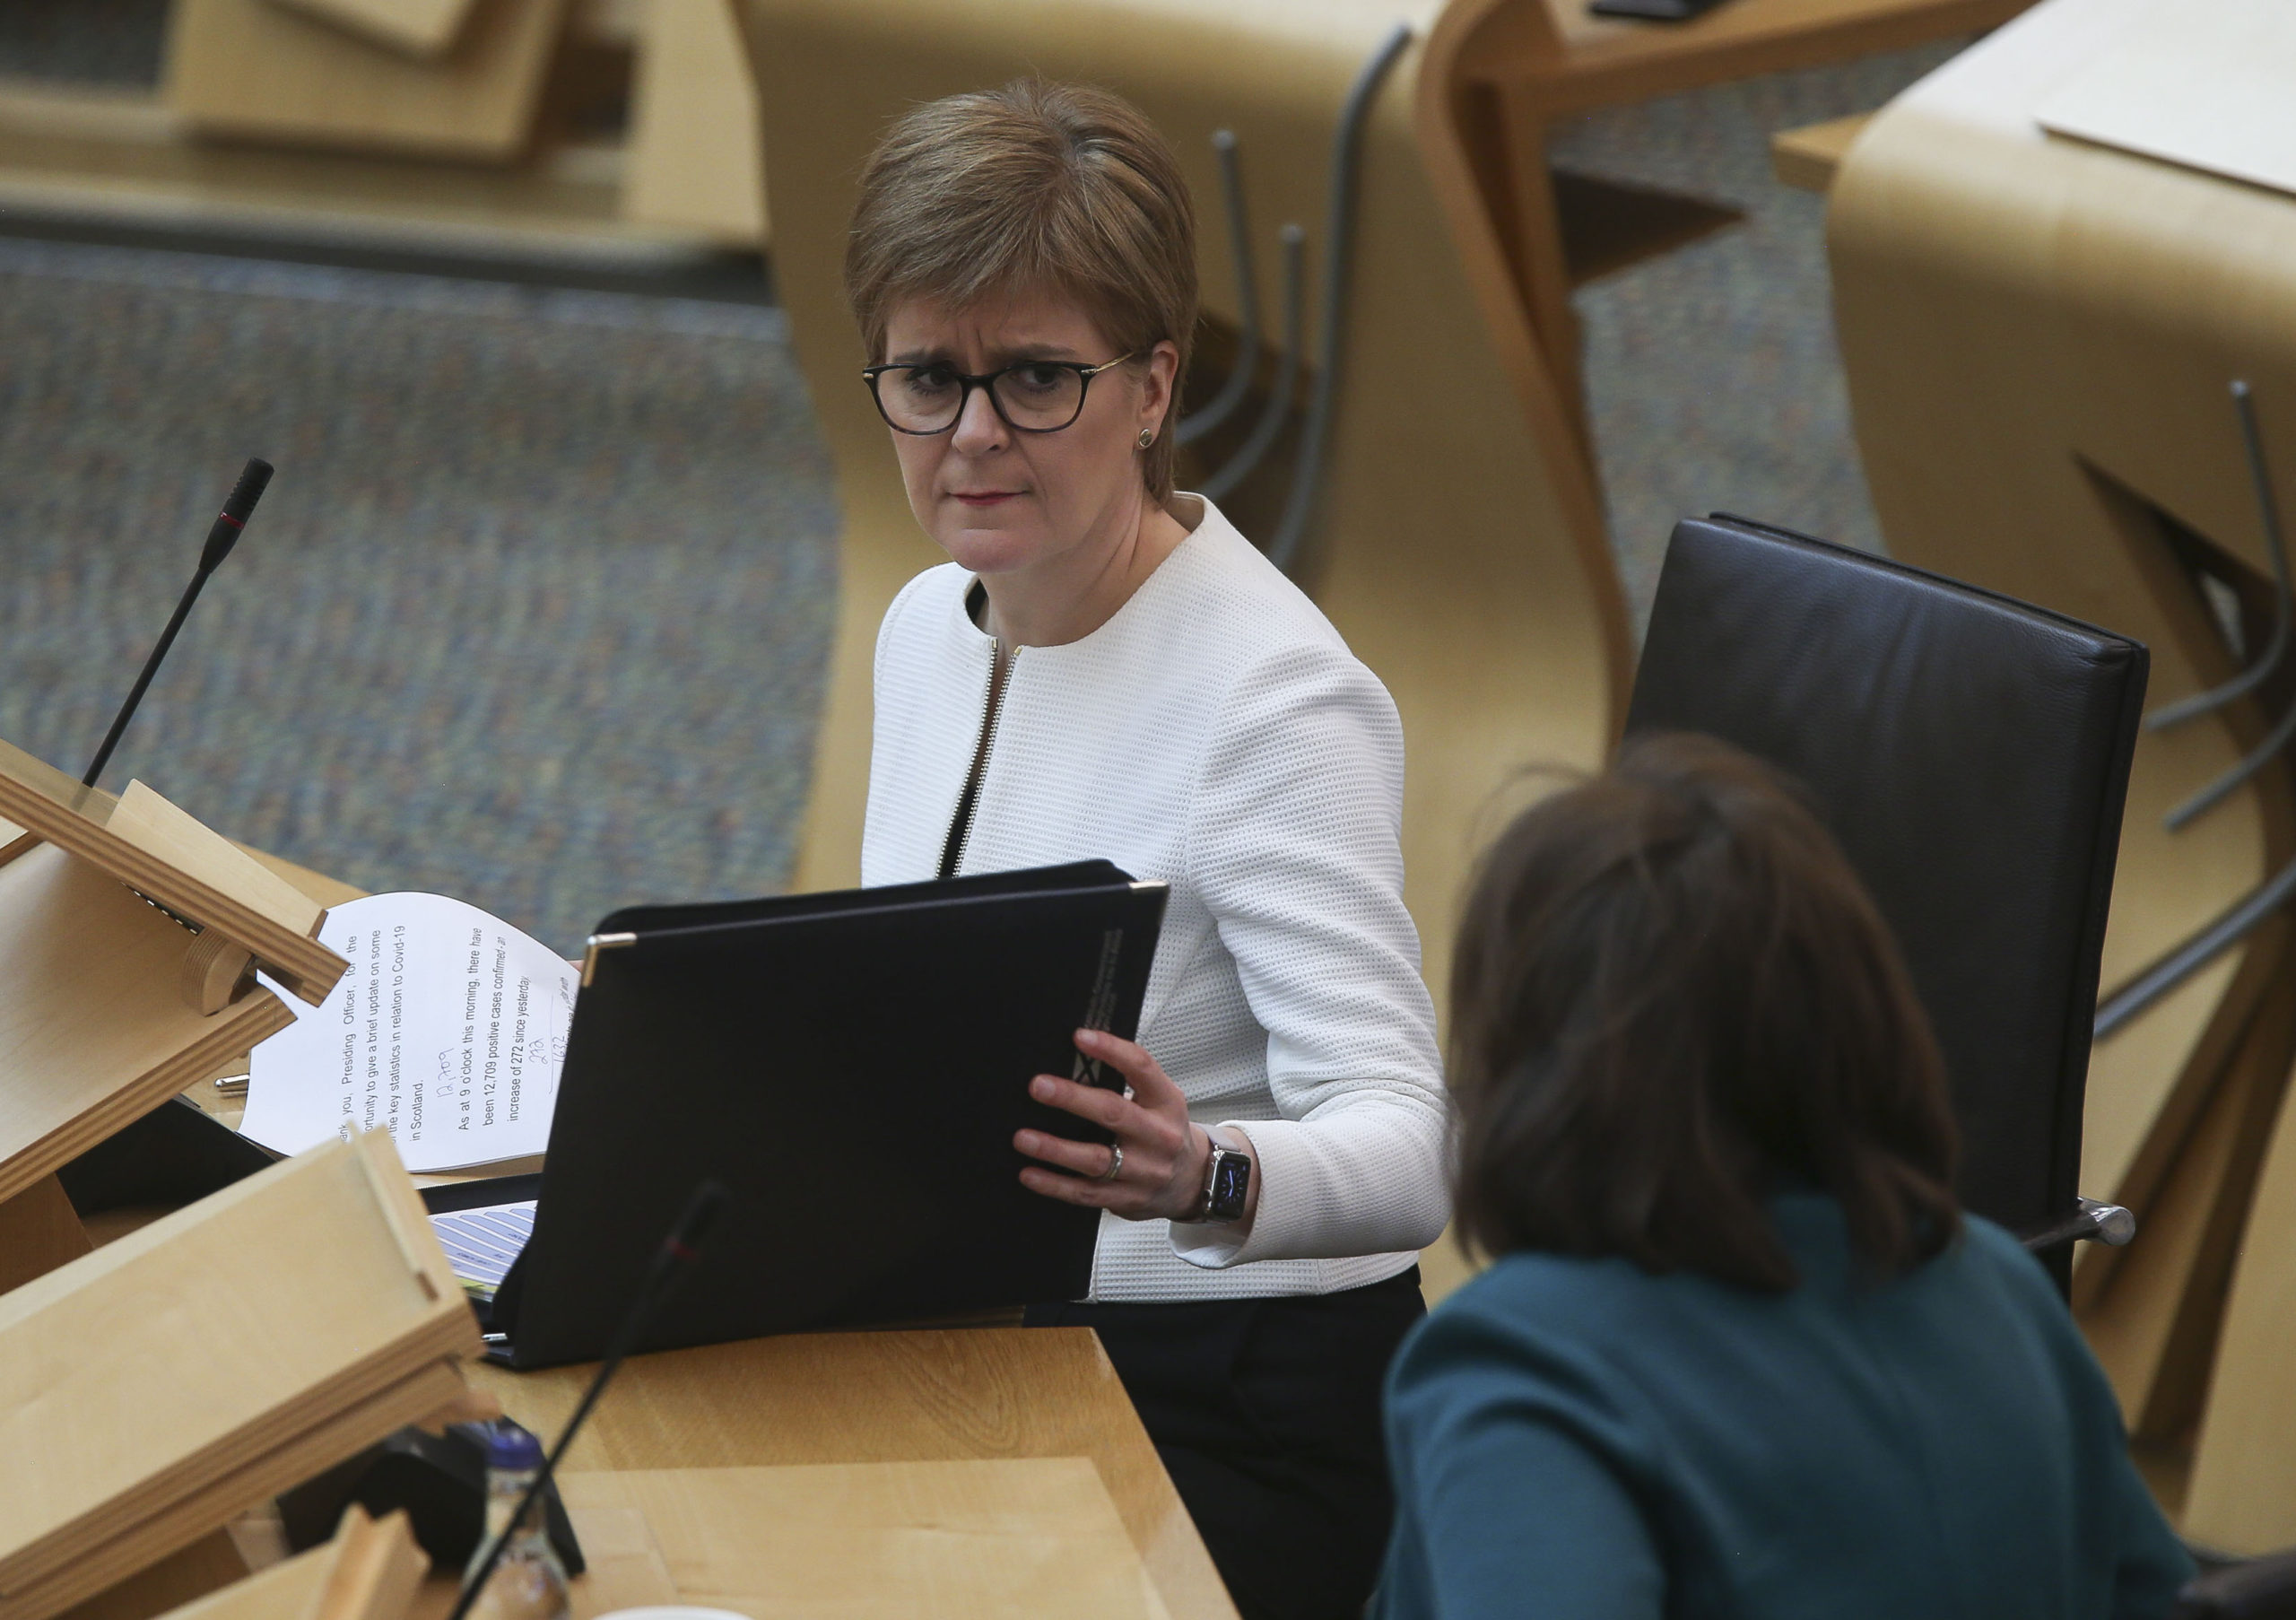 Nicola Sturgeon during Covid-19 social distancing First Minister's Questions at the Scottish Parliament.